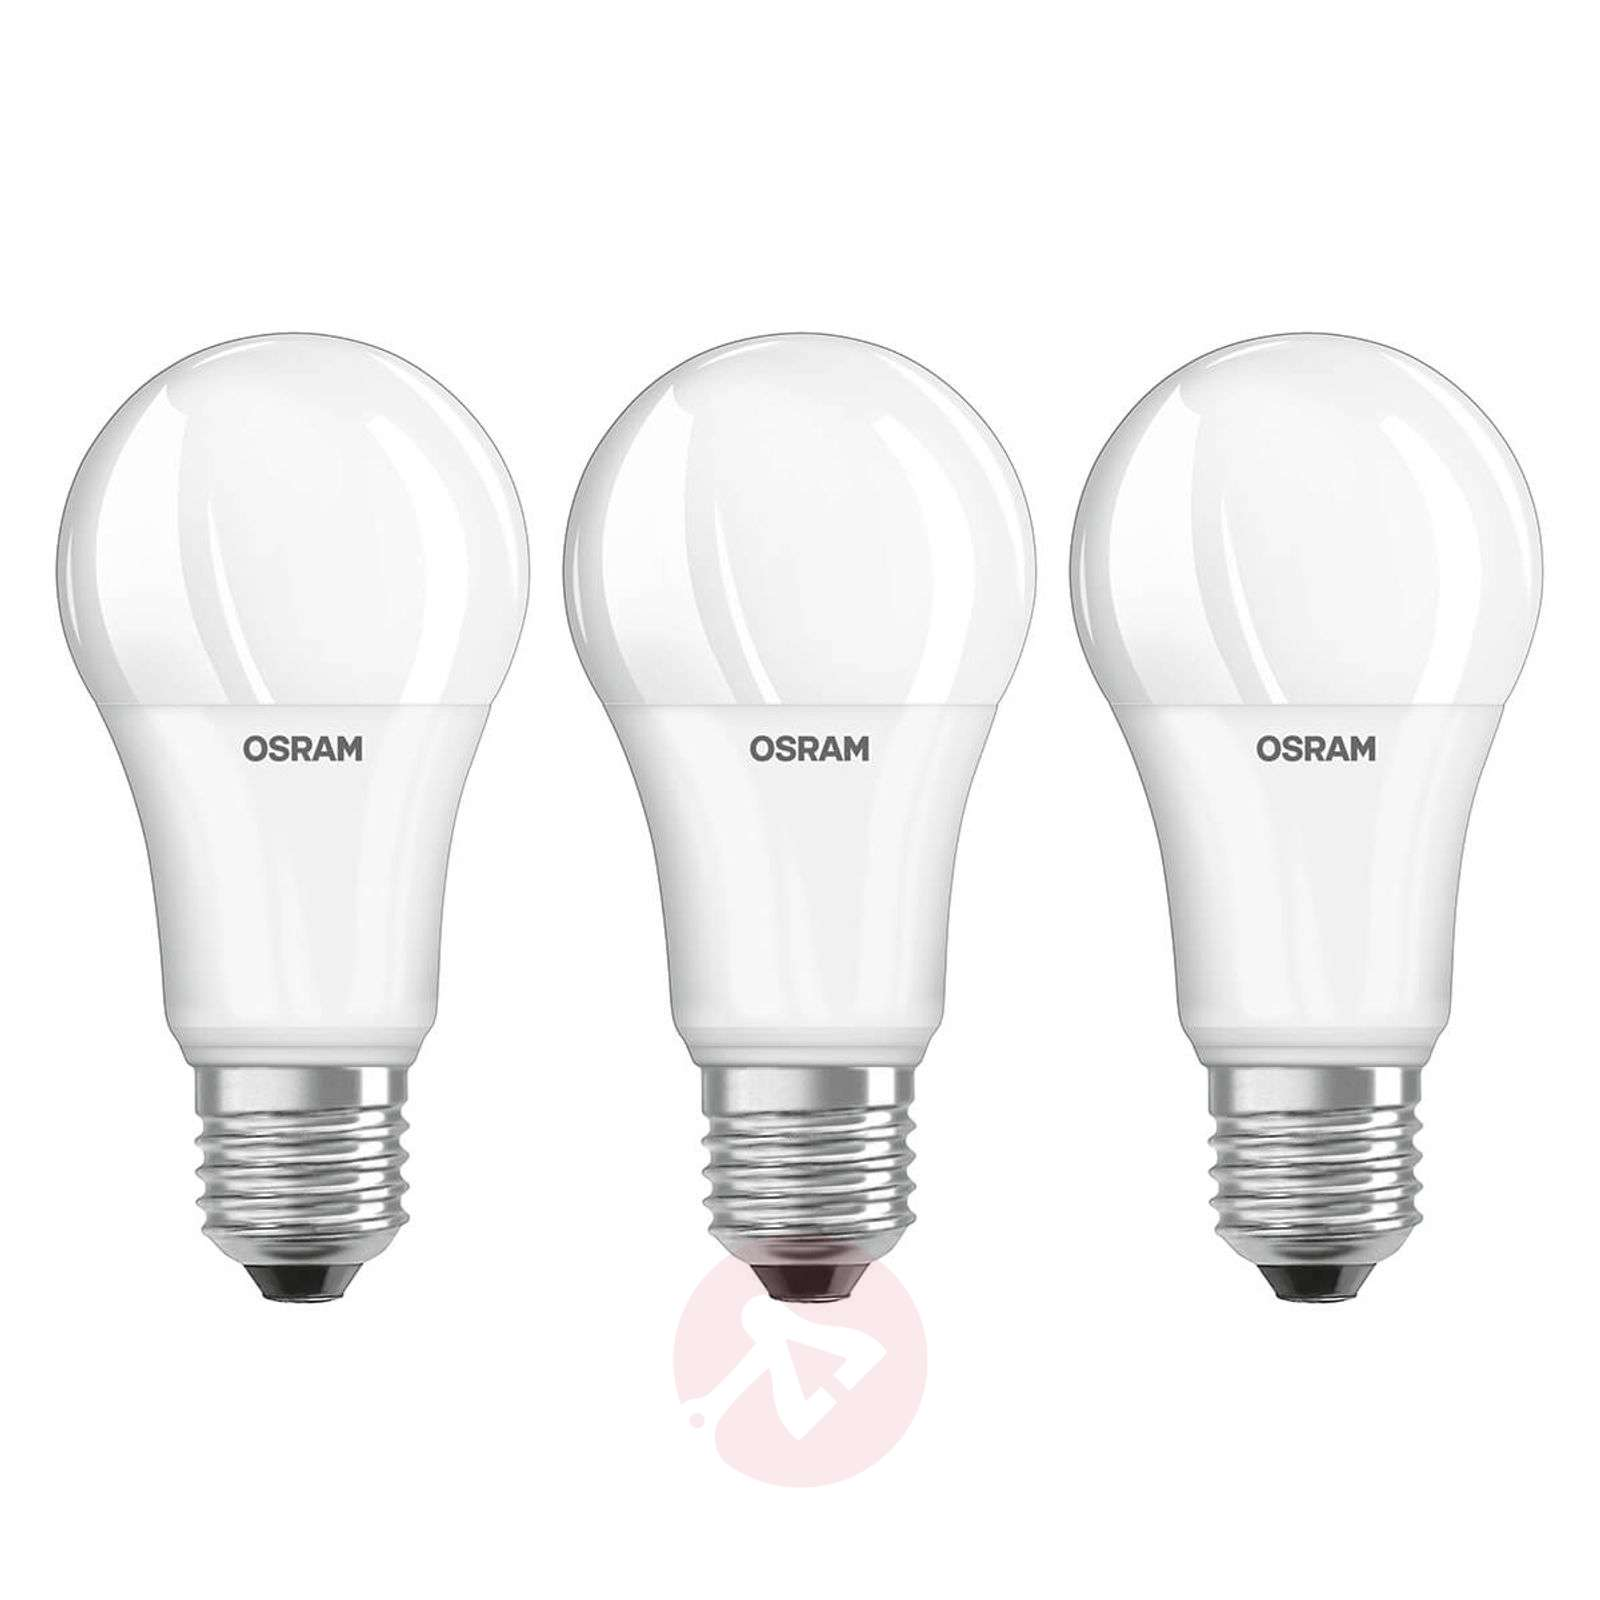 Lampadina LED E27 14W, bianco neutro, set da 3-7262105-01